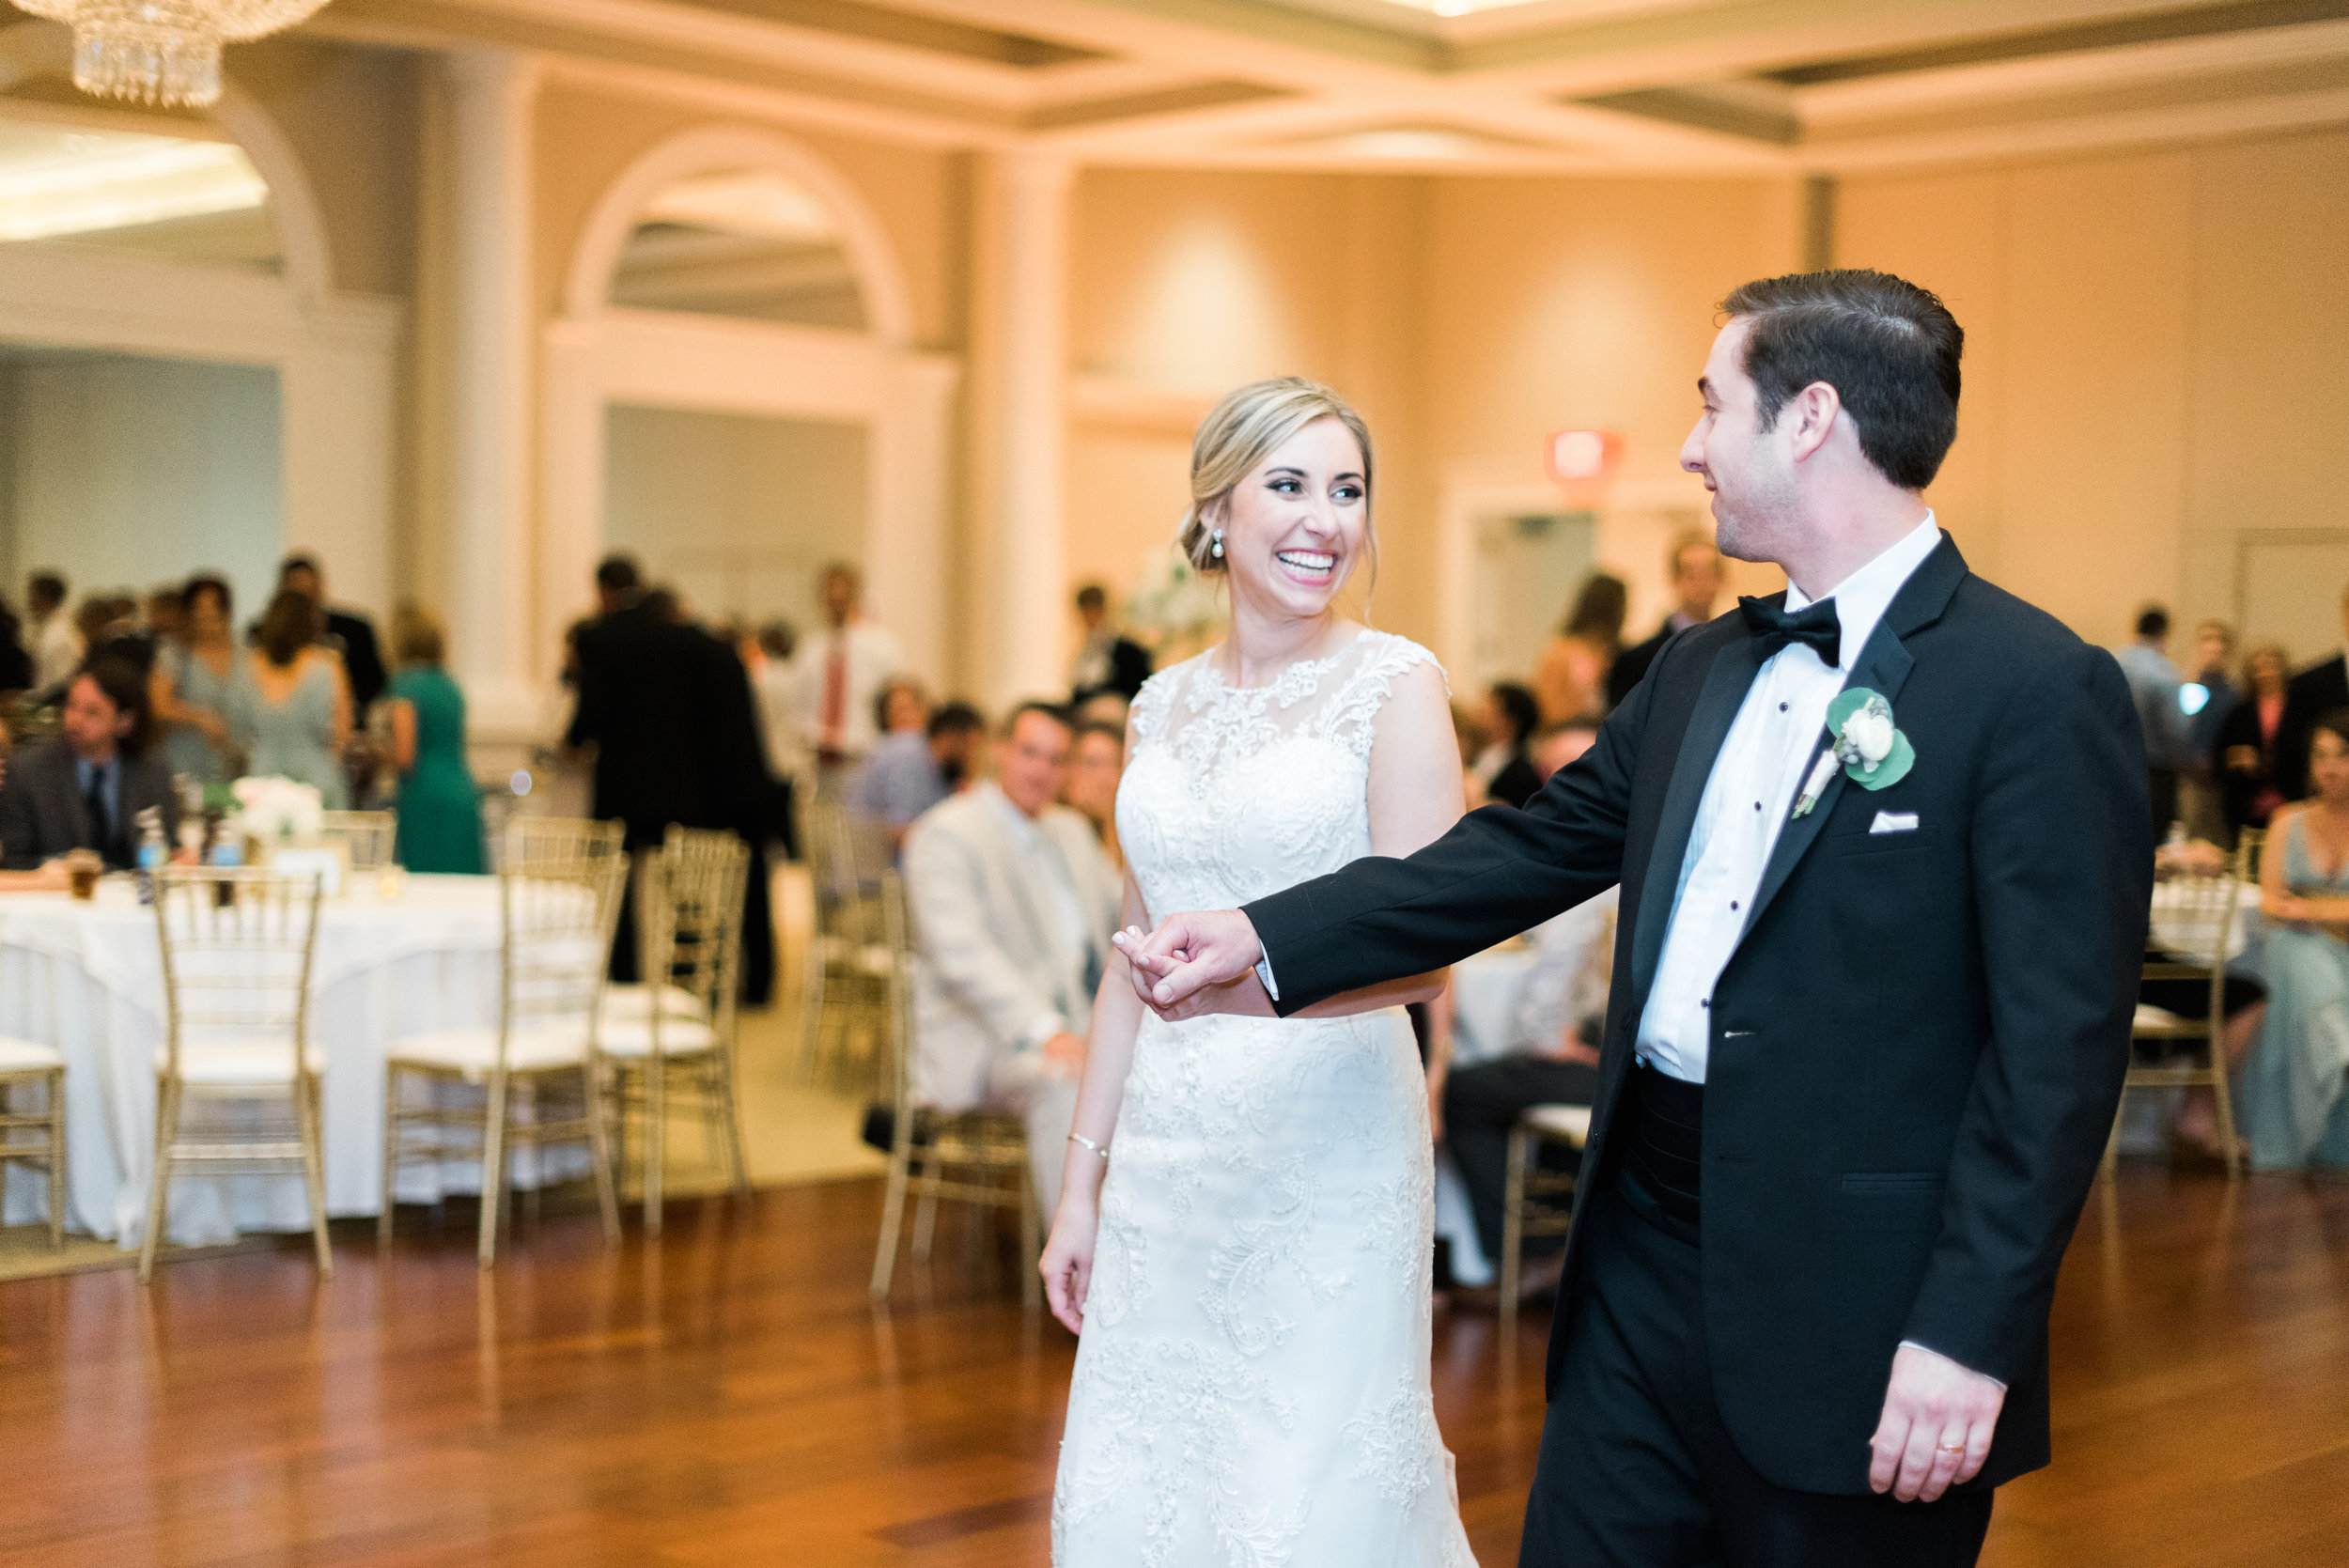 Southern Fete, Southern Wedding, Bride and Groom First Dance, Le Pavillon, Crescent City Soul, Sarah Beth Photography